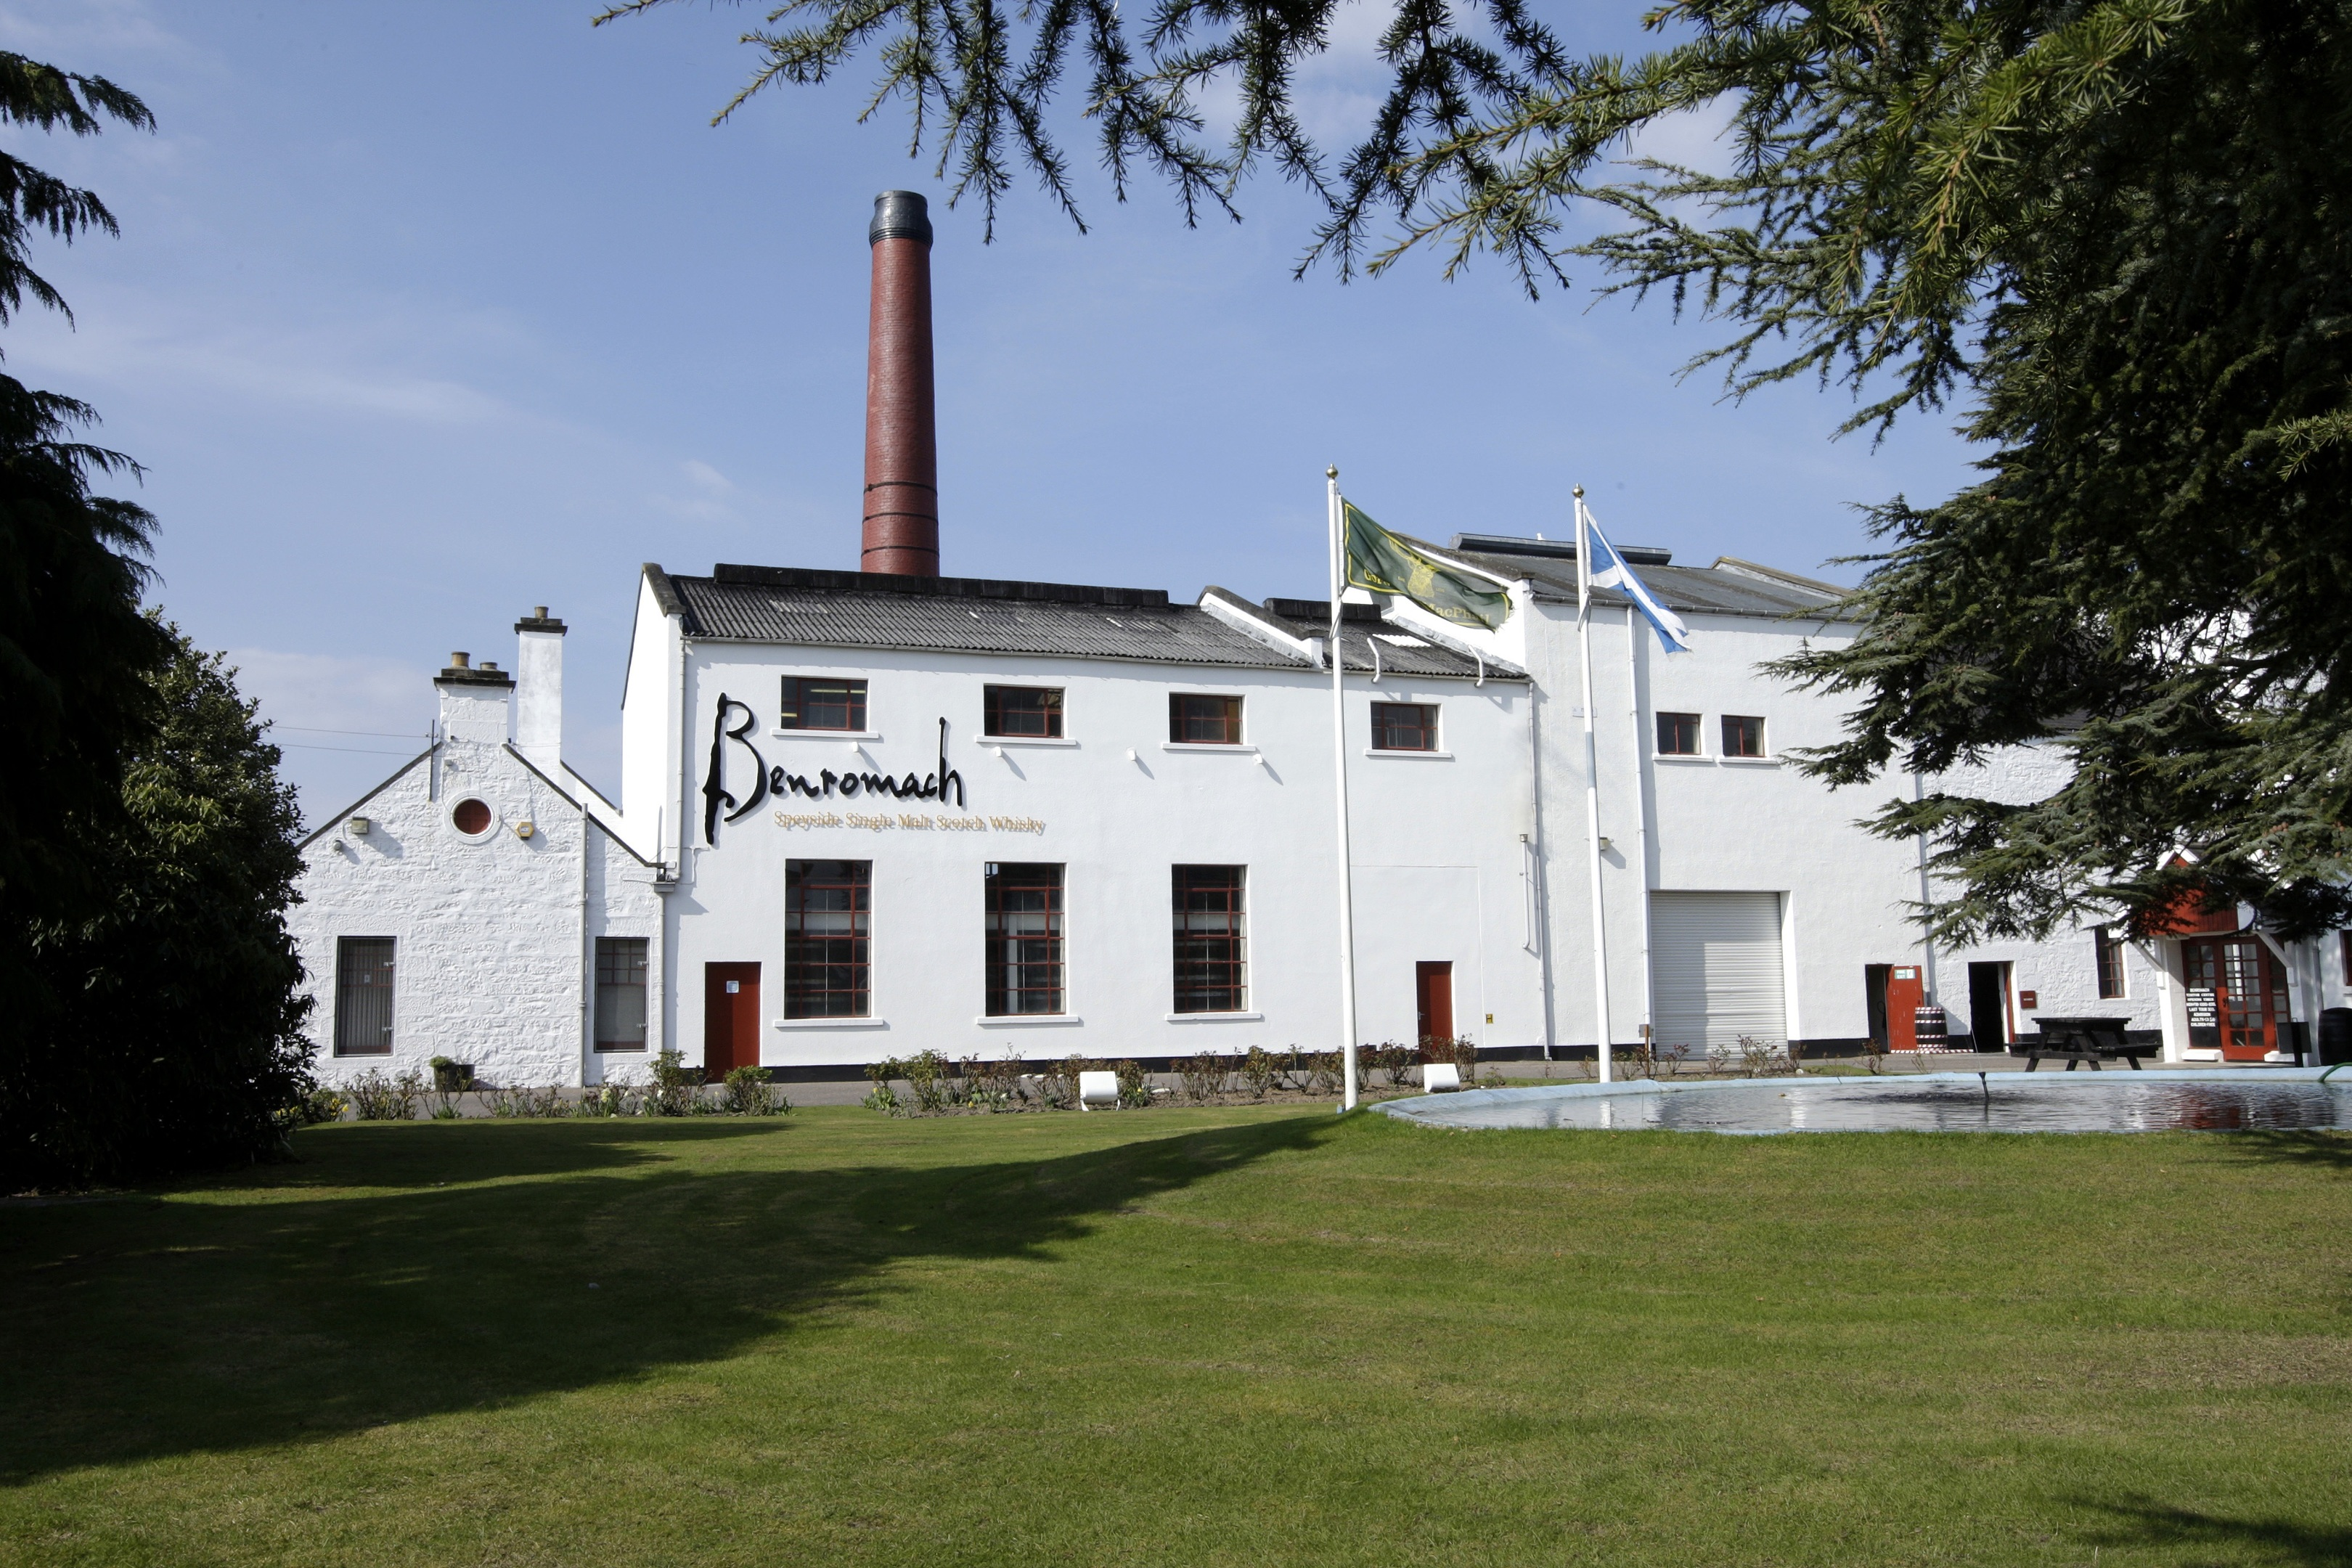 Benromach Distillery, in Forres.